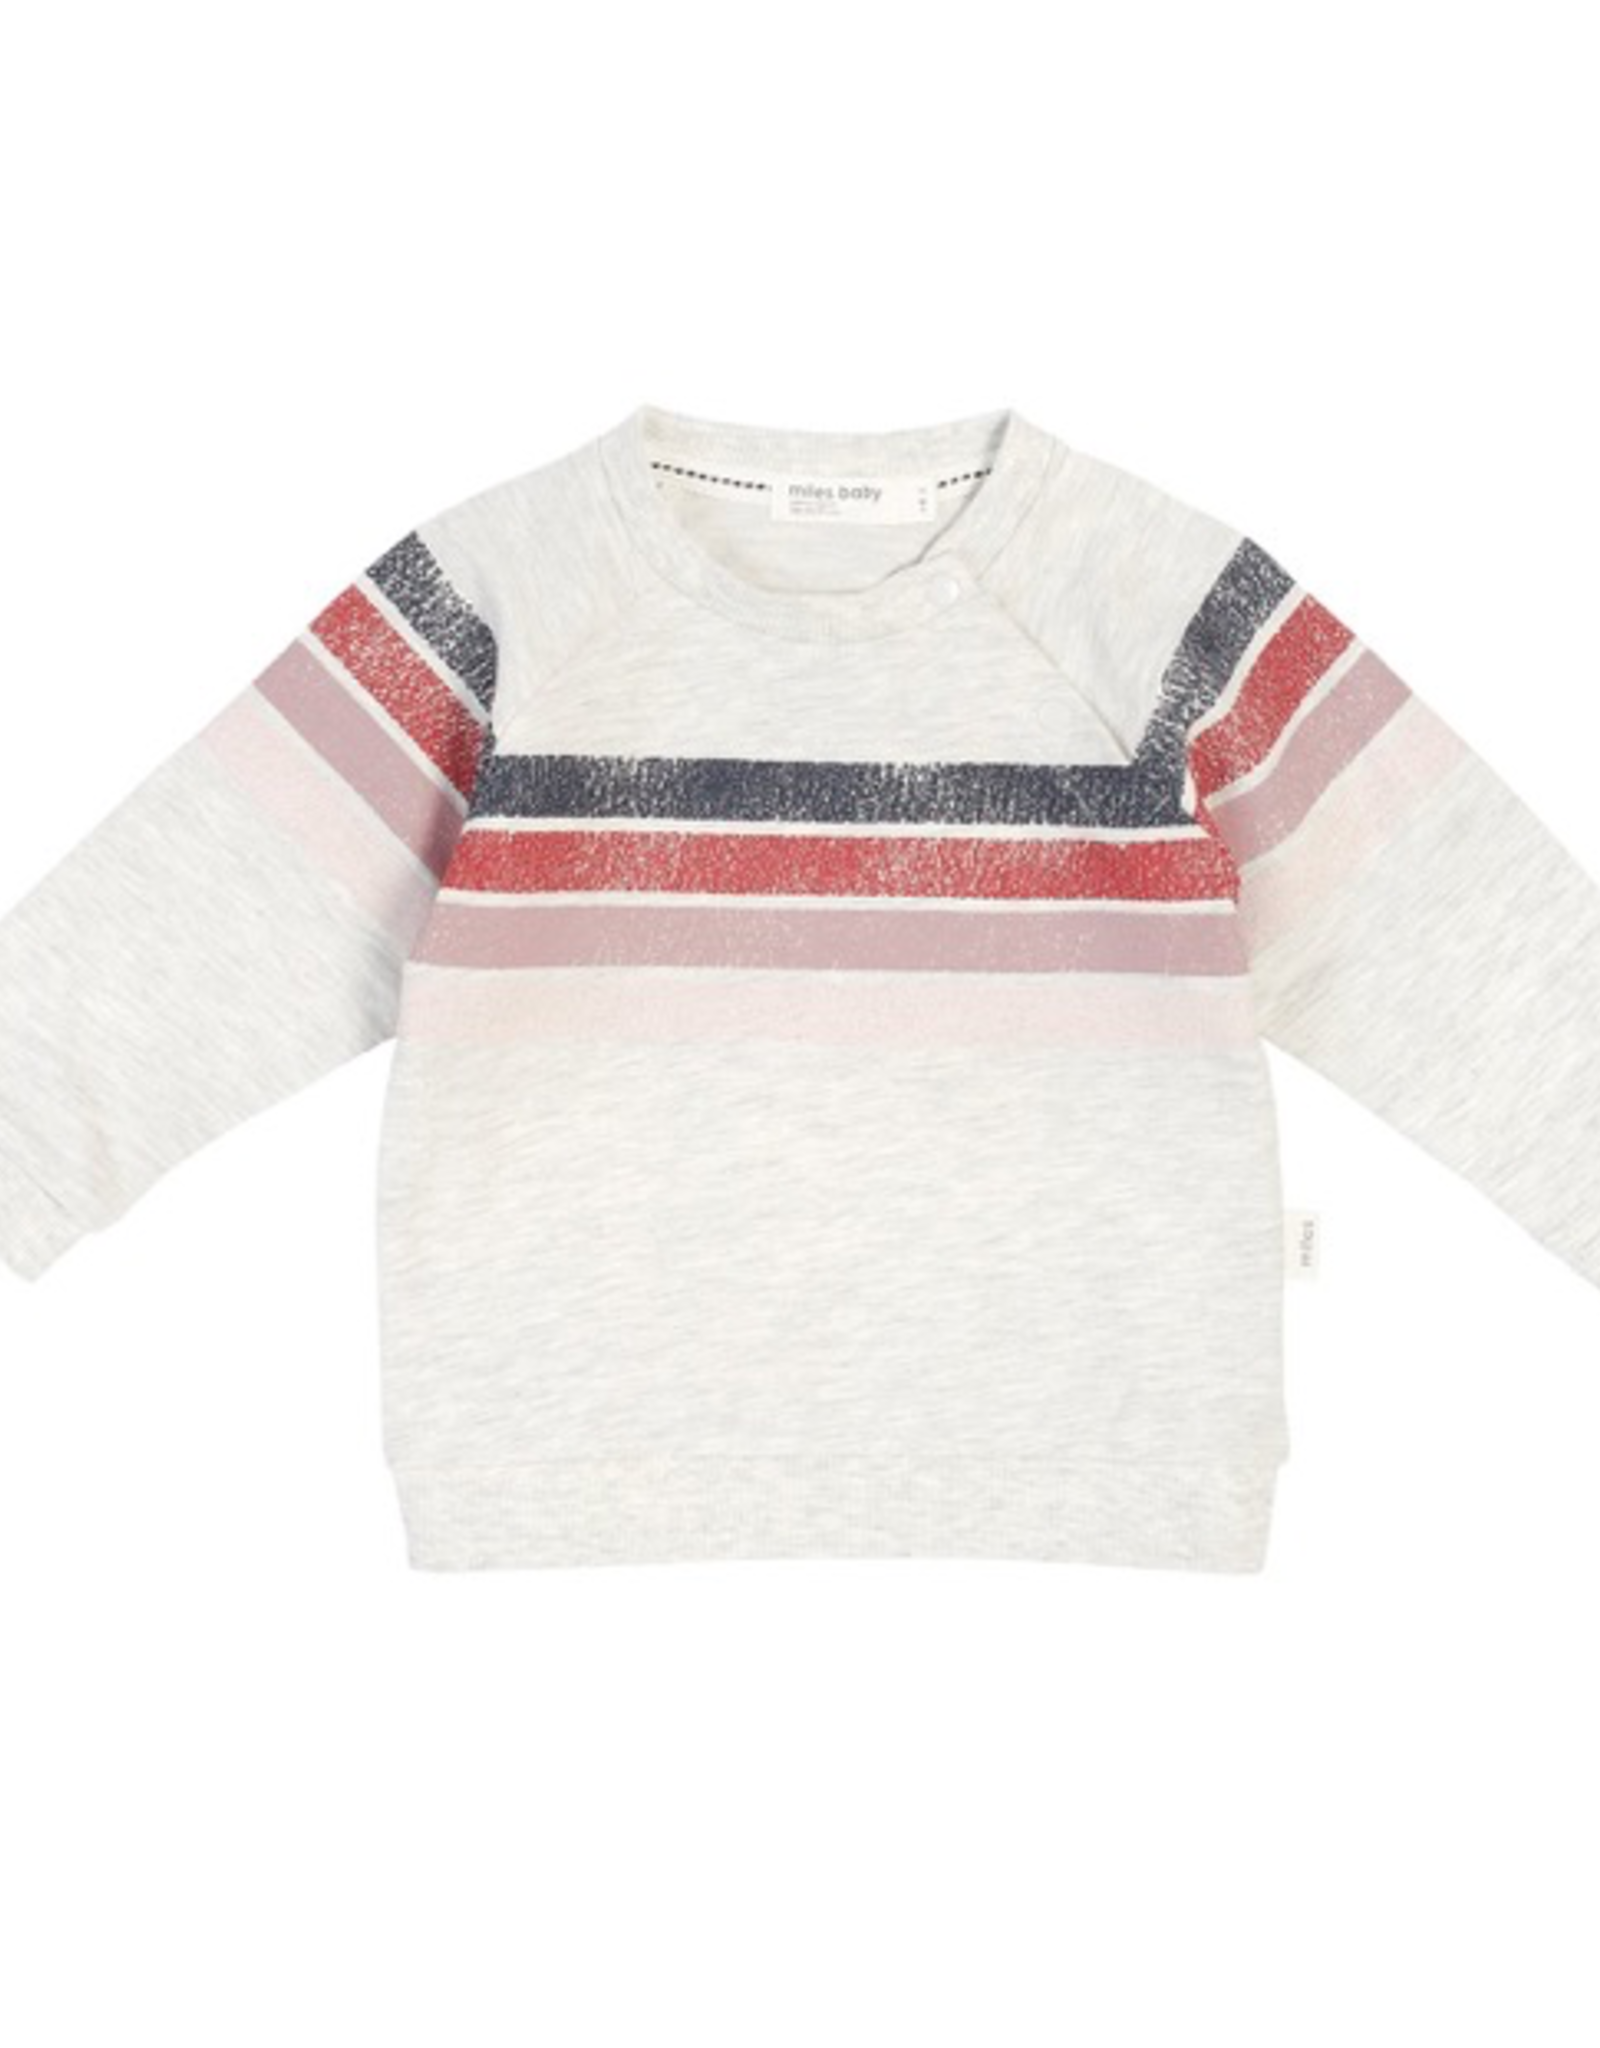 Knit Sweatshirt for Girl in Pink